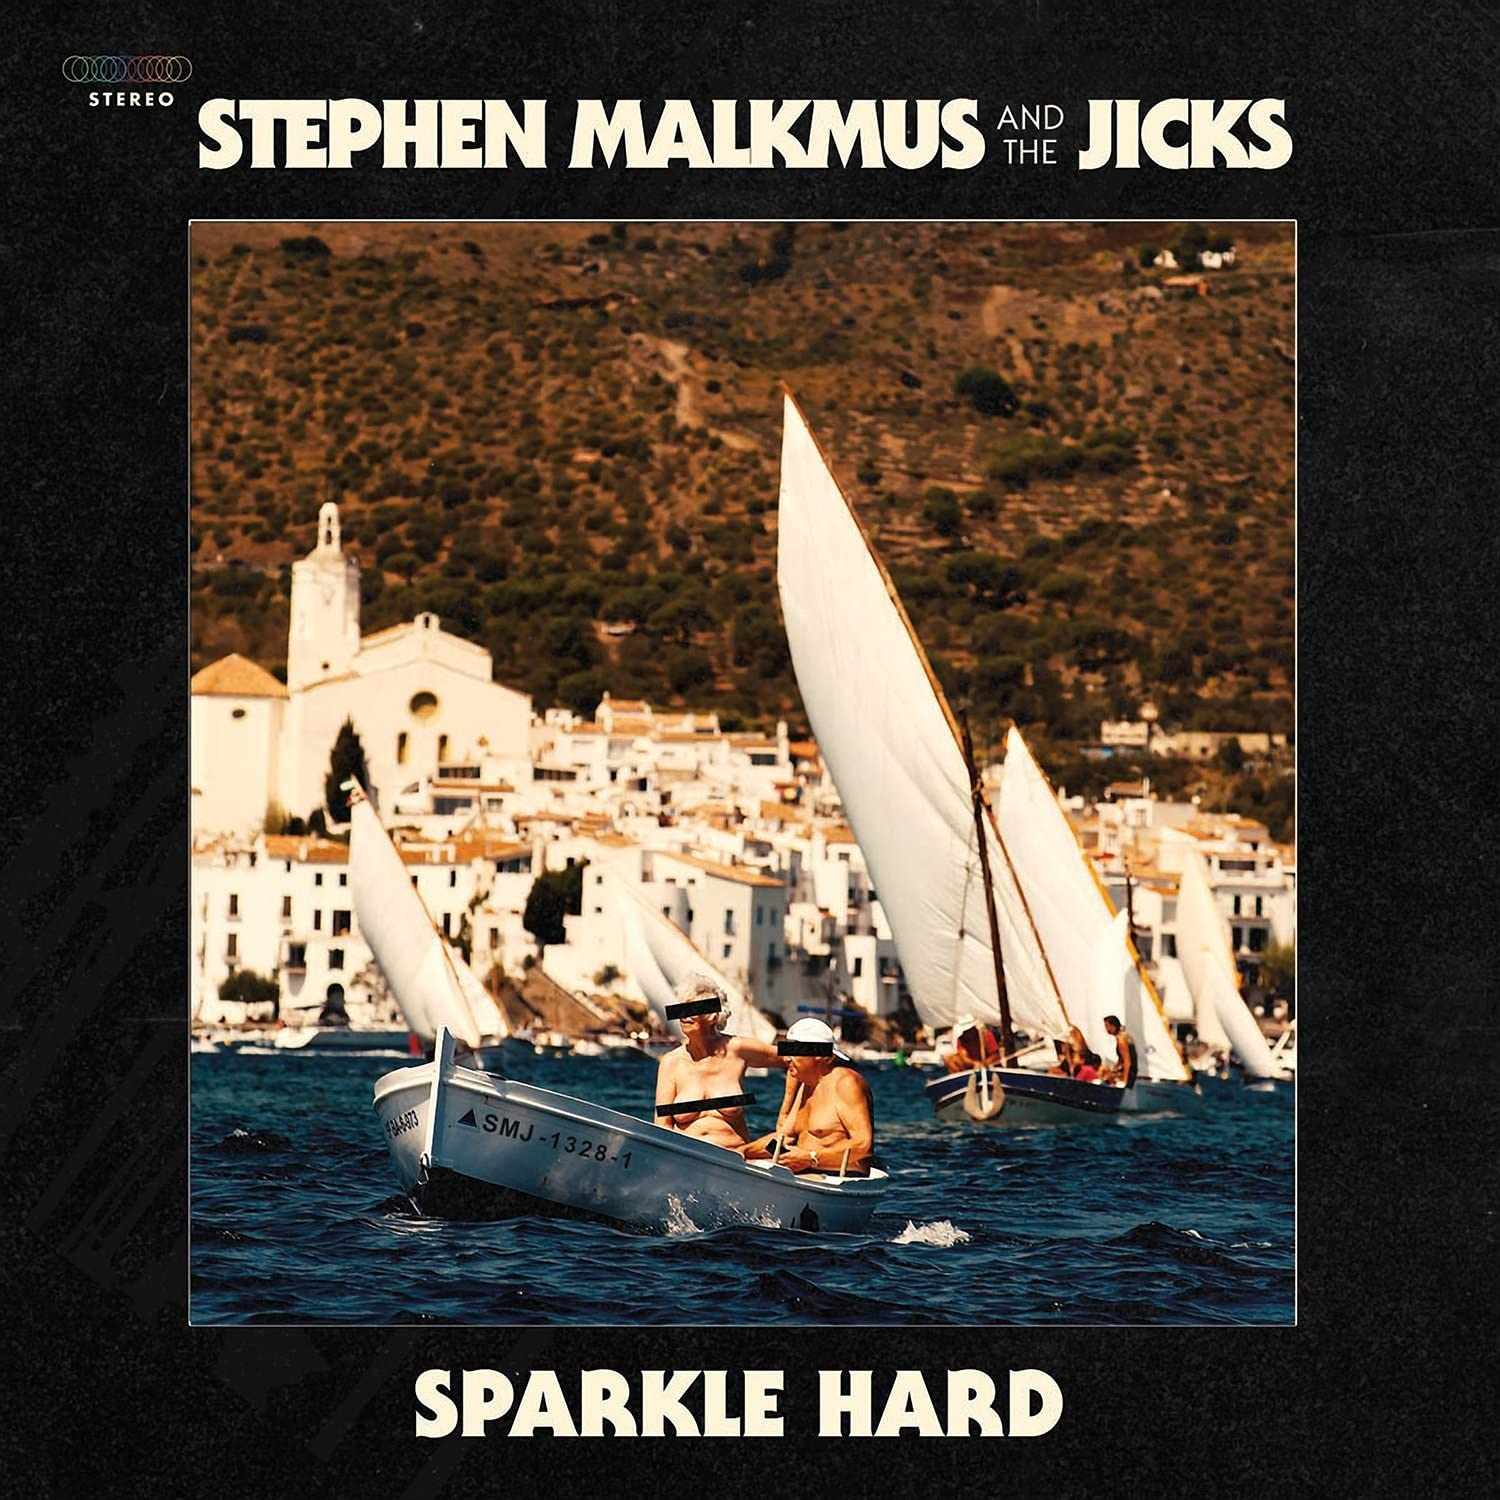 Malkmus, Stephen & The Jicks/Sparkle Hard [LP]